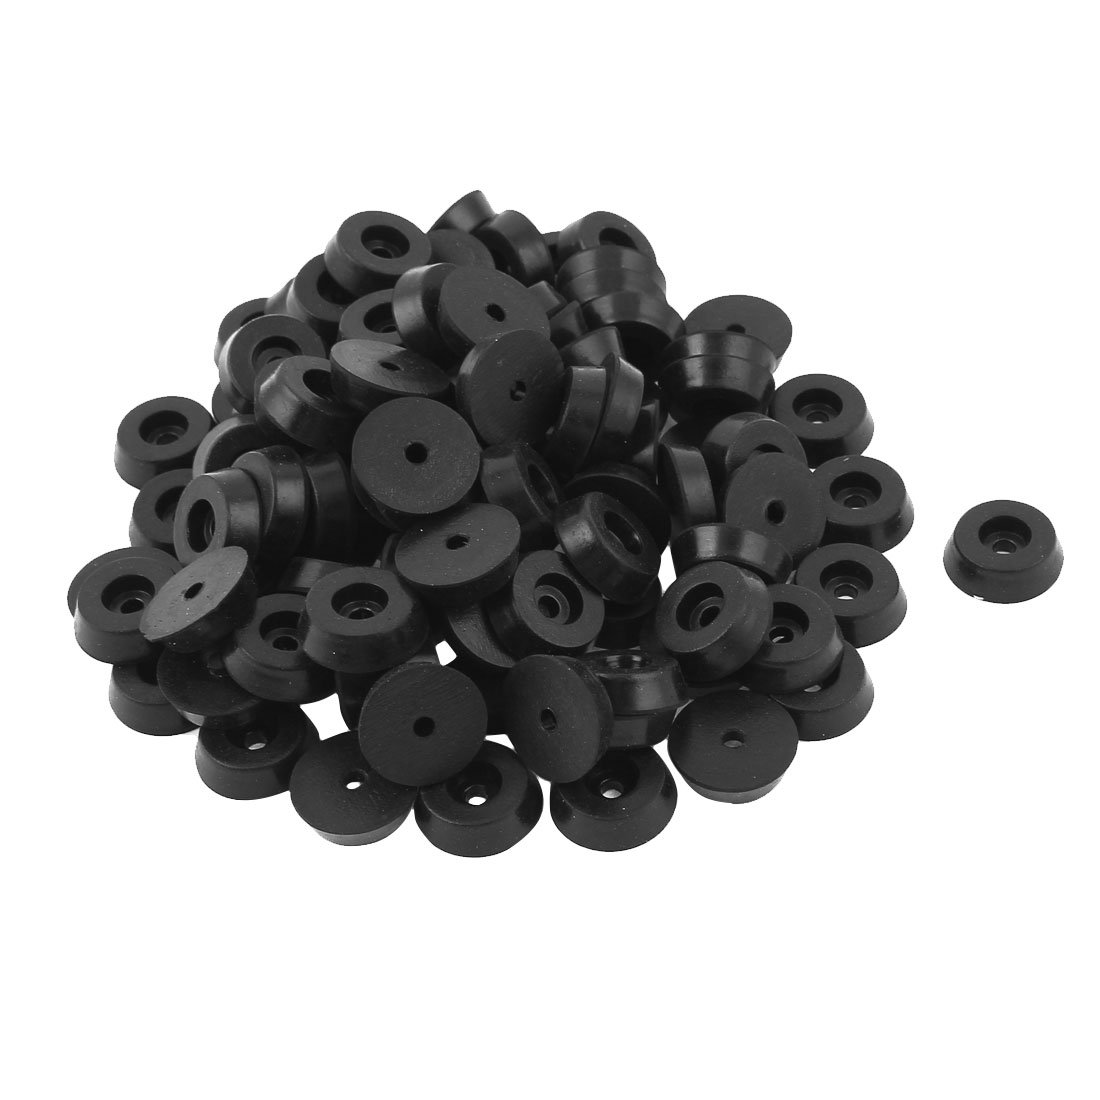 100 Pcs 5mmx18mm Conical Rubber Furniture Bumper Foot Cover Pad Black uxcell a15110200ux0318